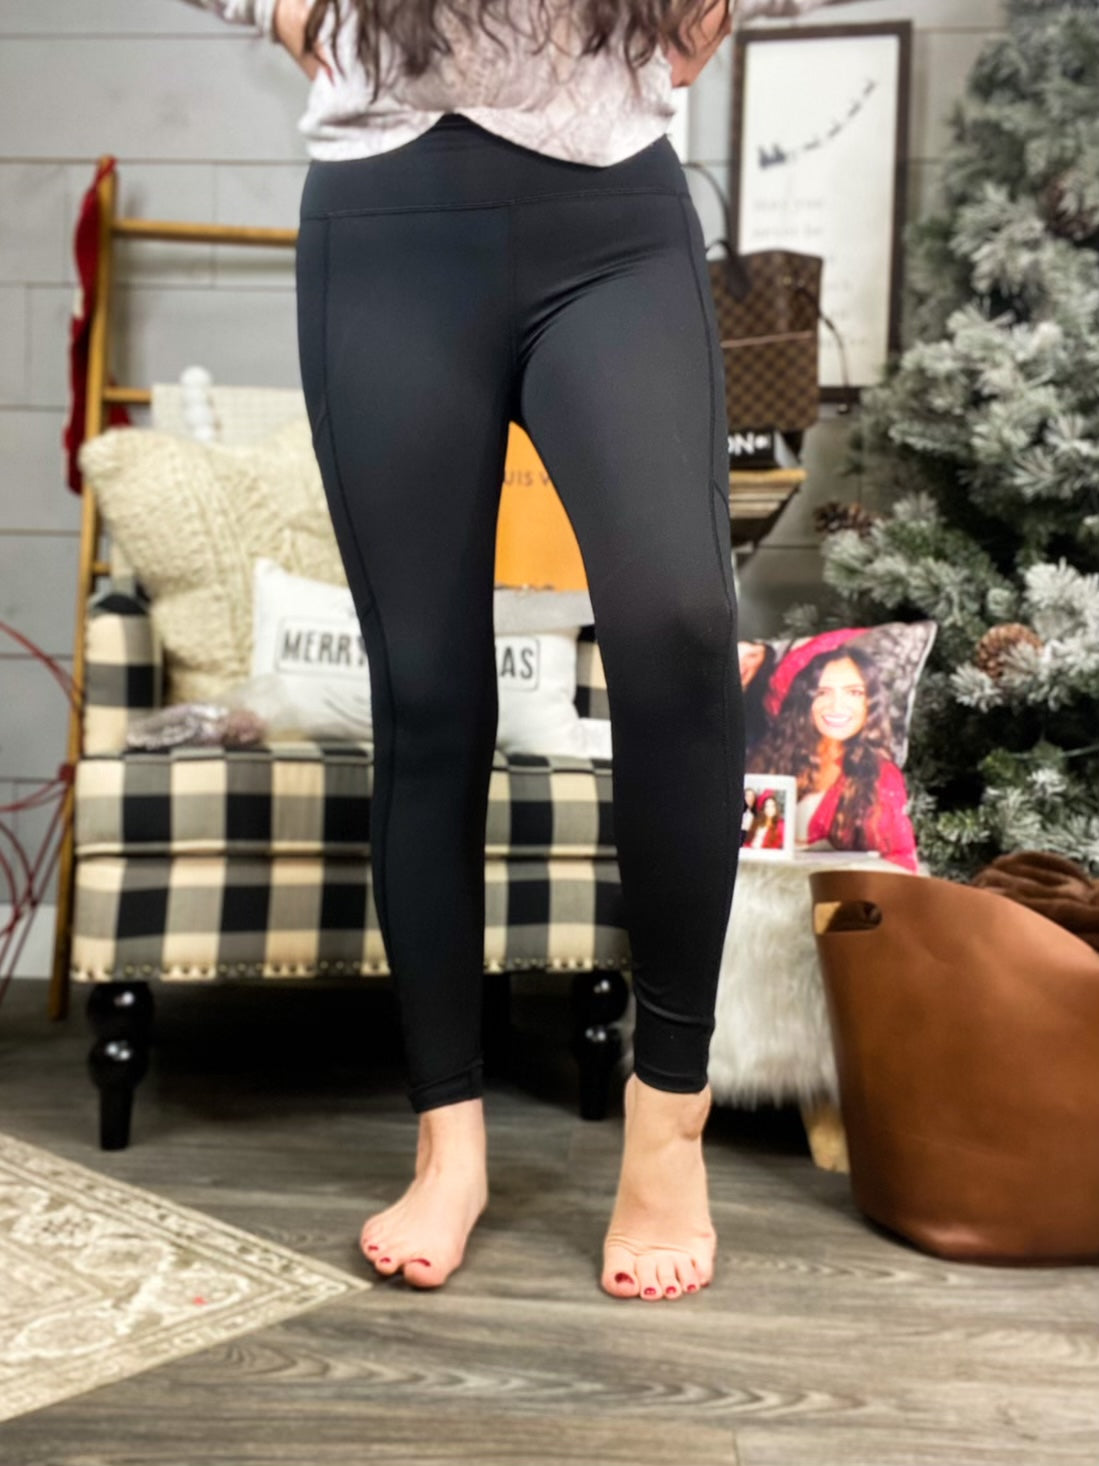 THE BEST fit performance legging